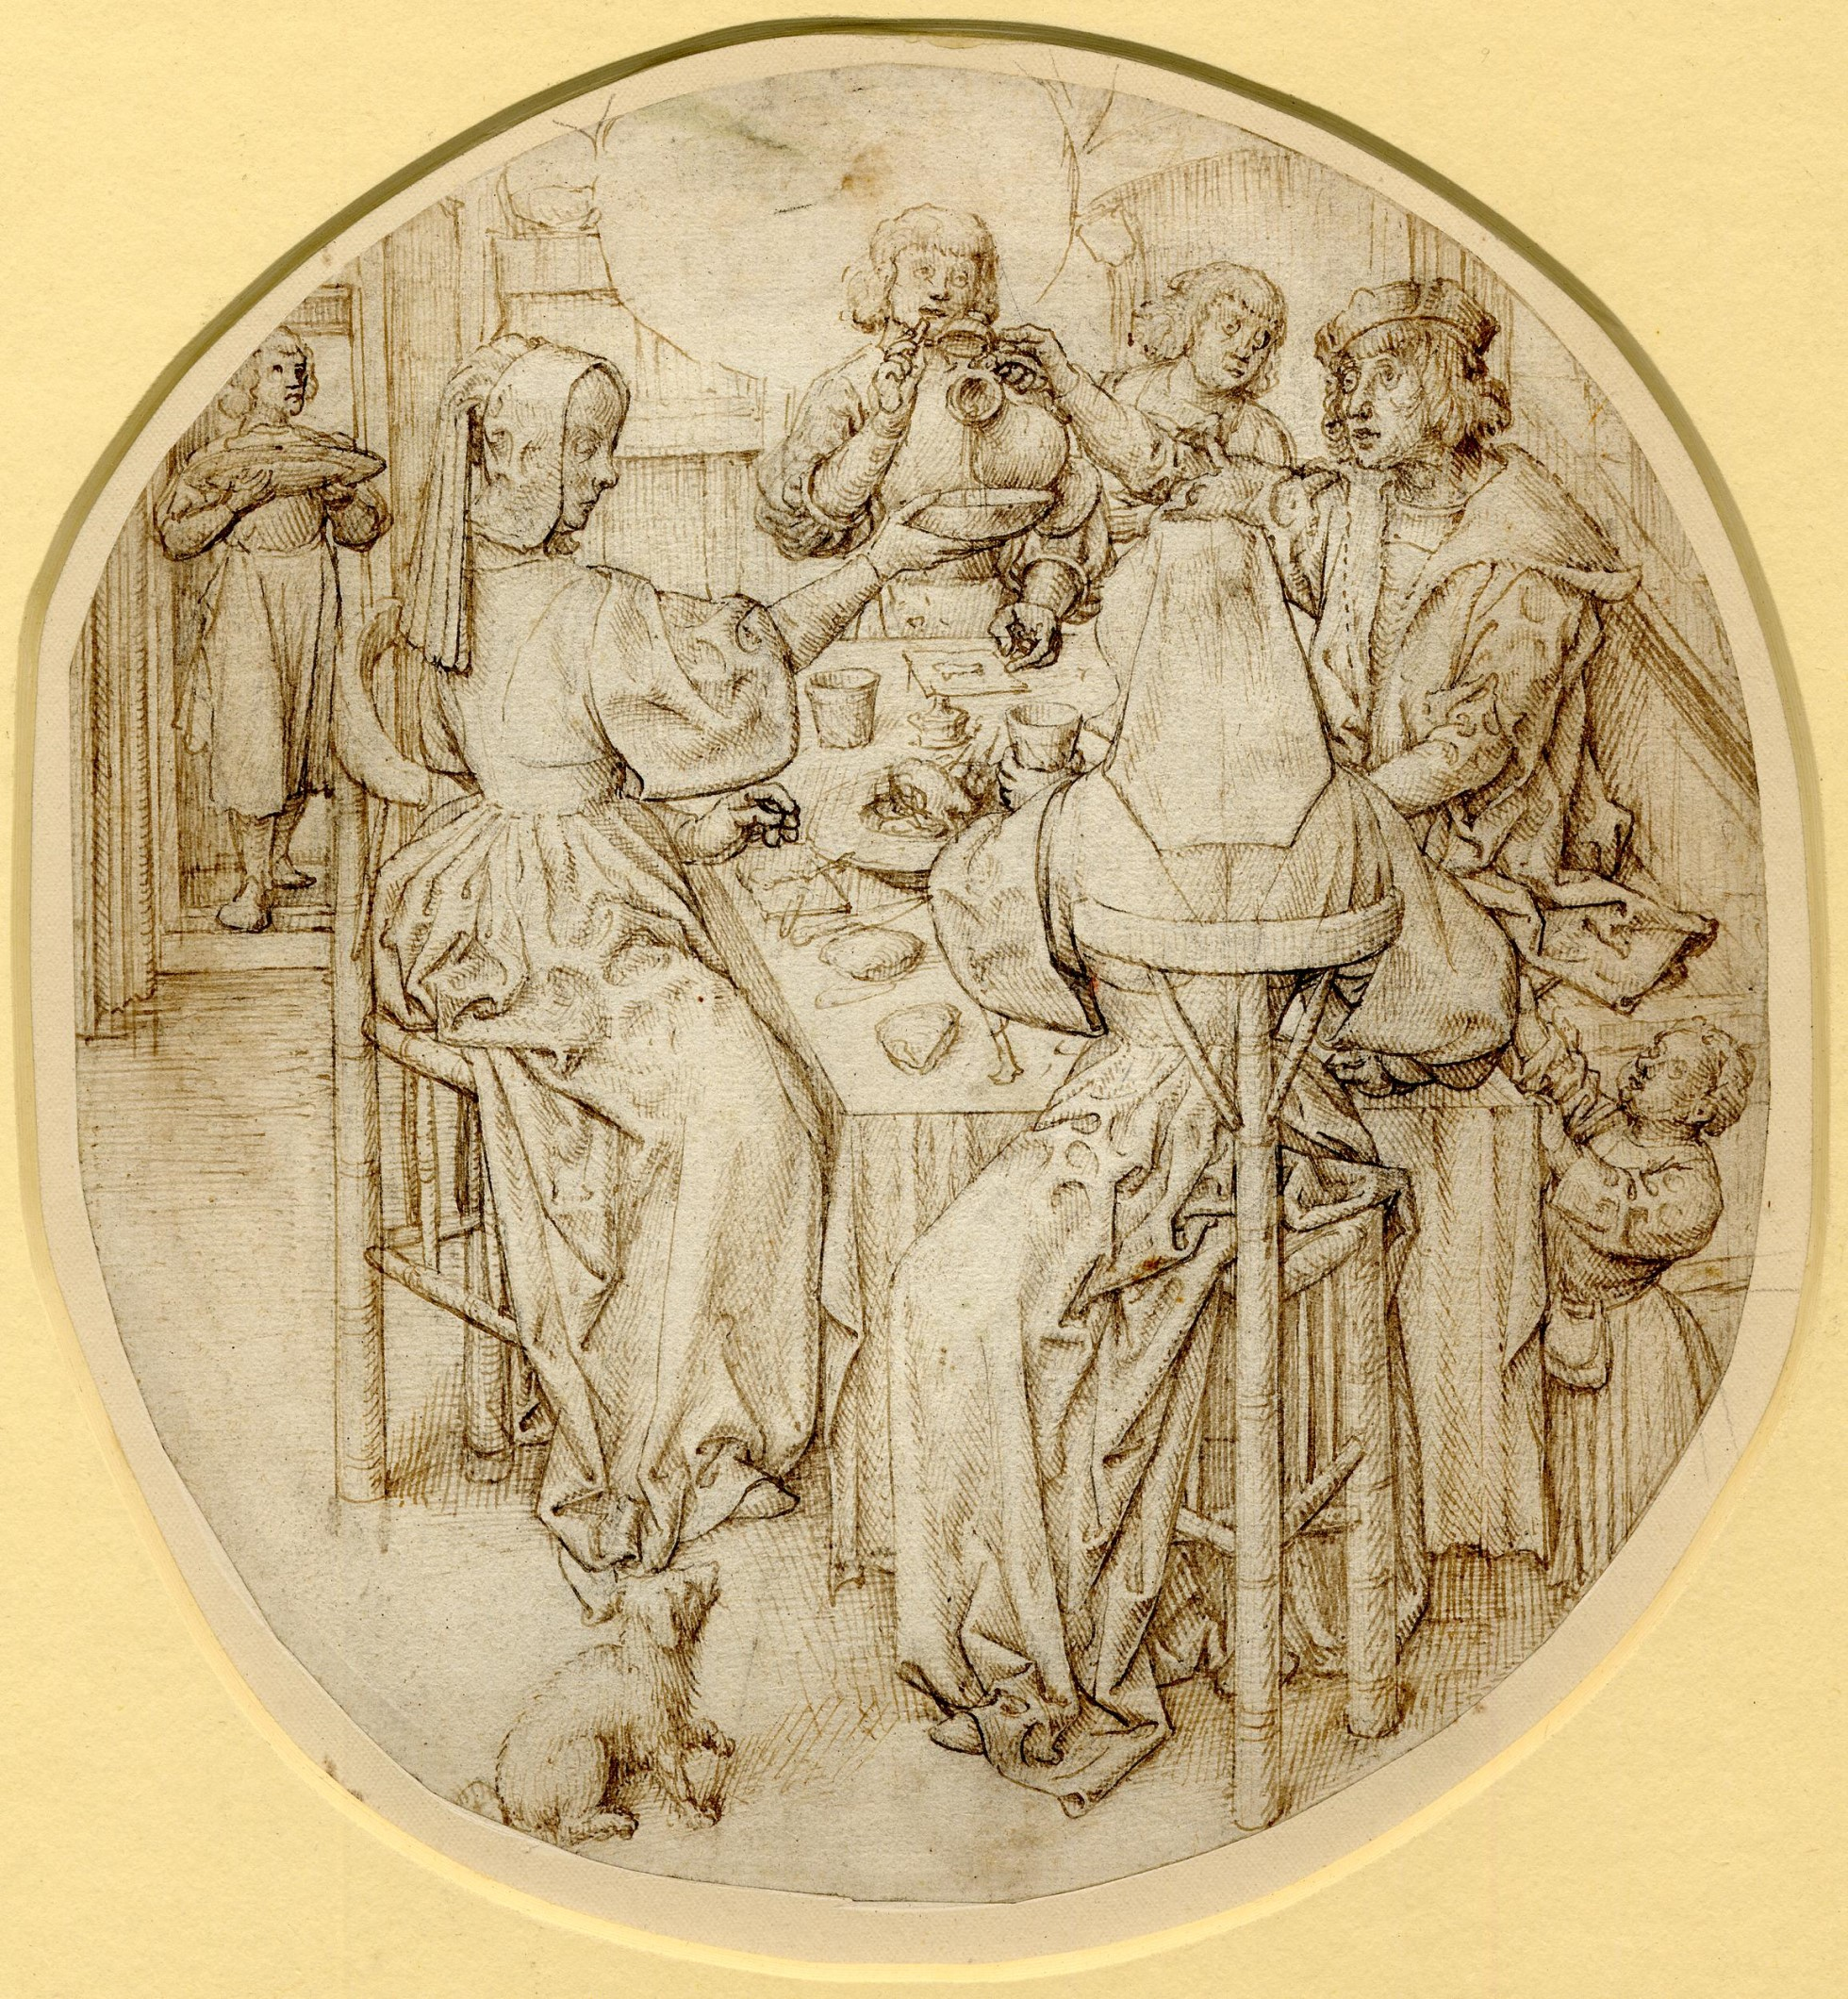 A print showing a group of five figures dining: a servant with food entering the doorway at left, a child reaching up to the table at right and a small dog in the foreground. The print is in a roundel.  Brown ink on a cream ground.